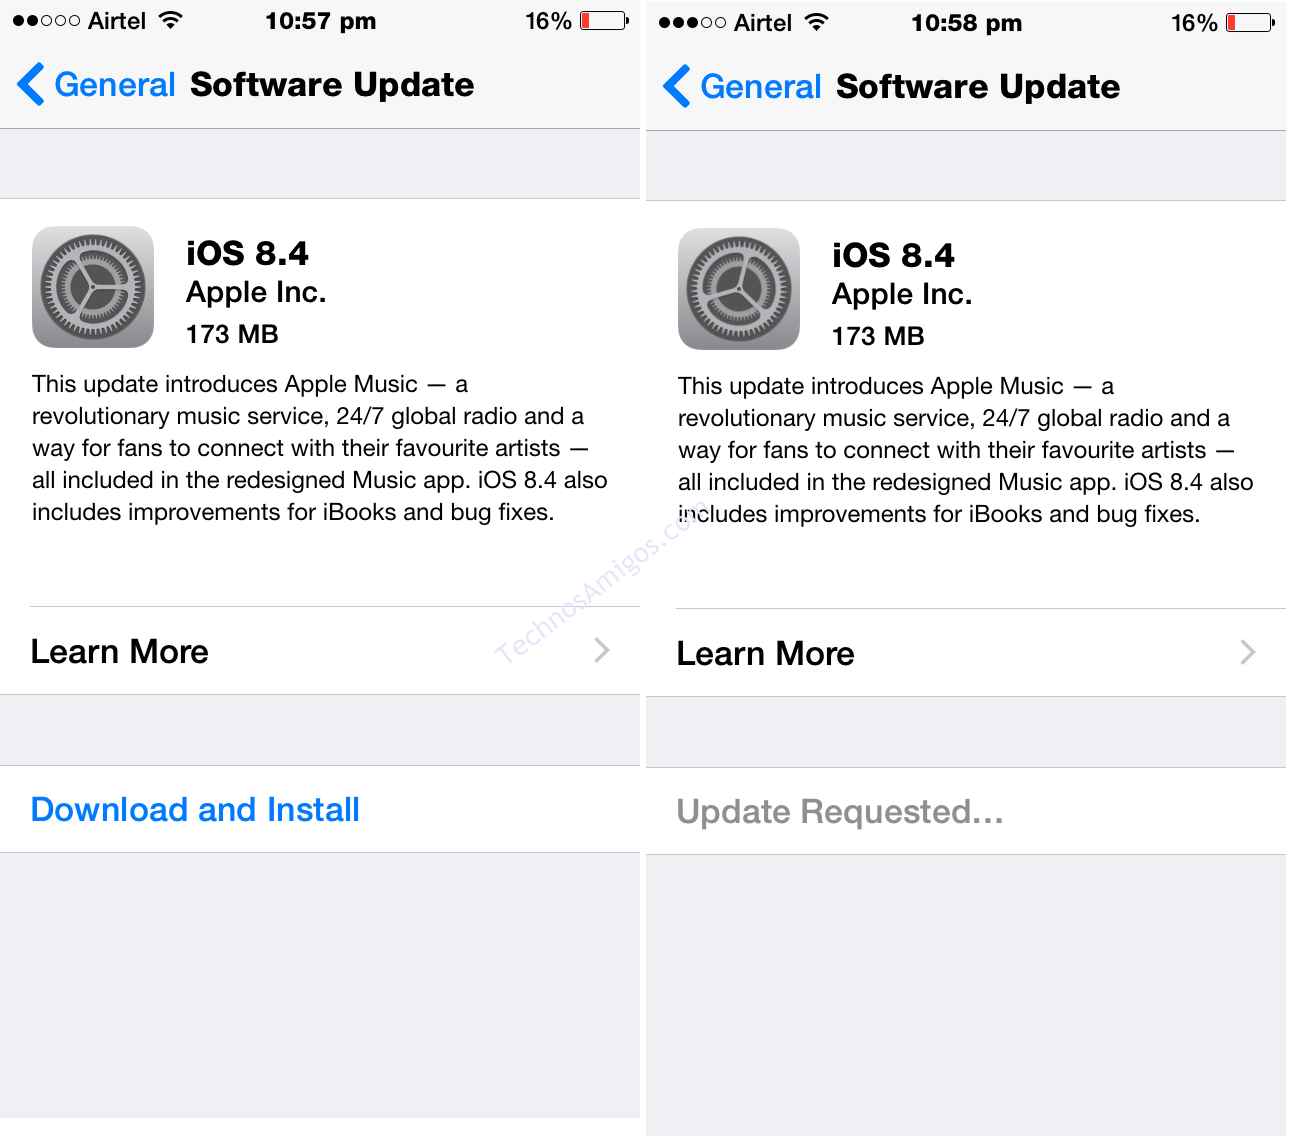 iPhone iOS 8.4 update